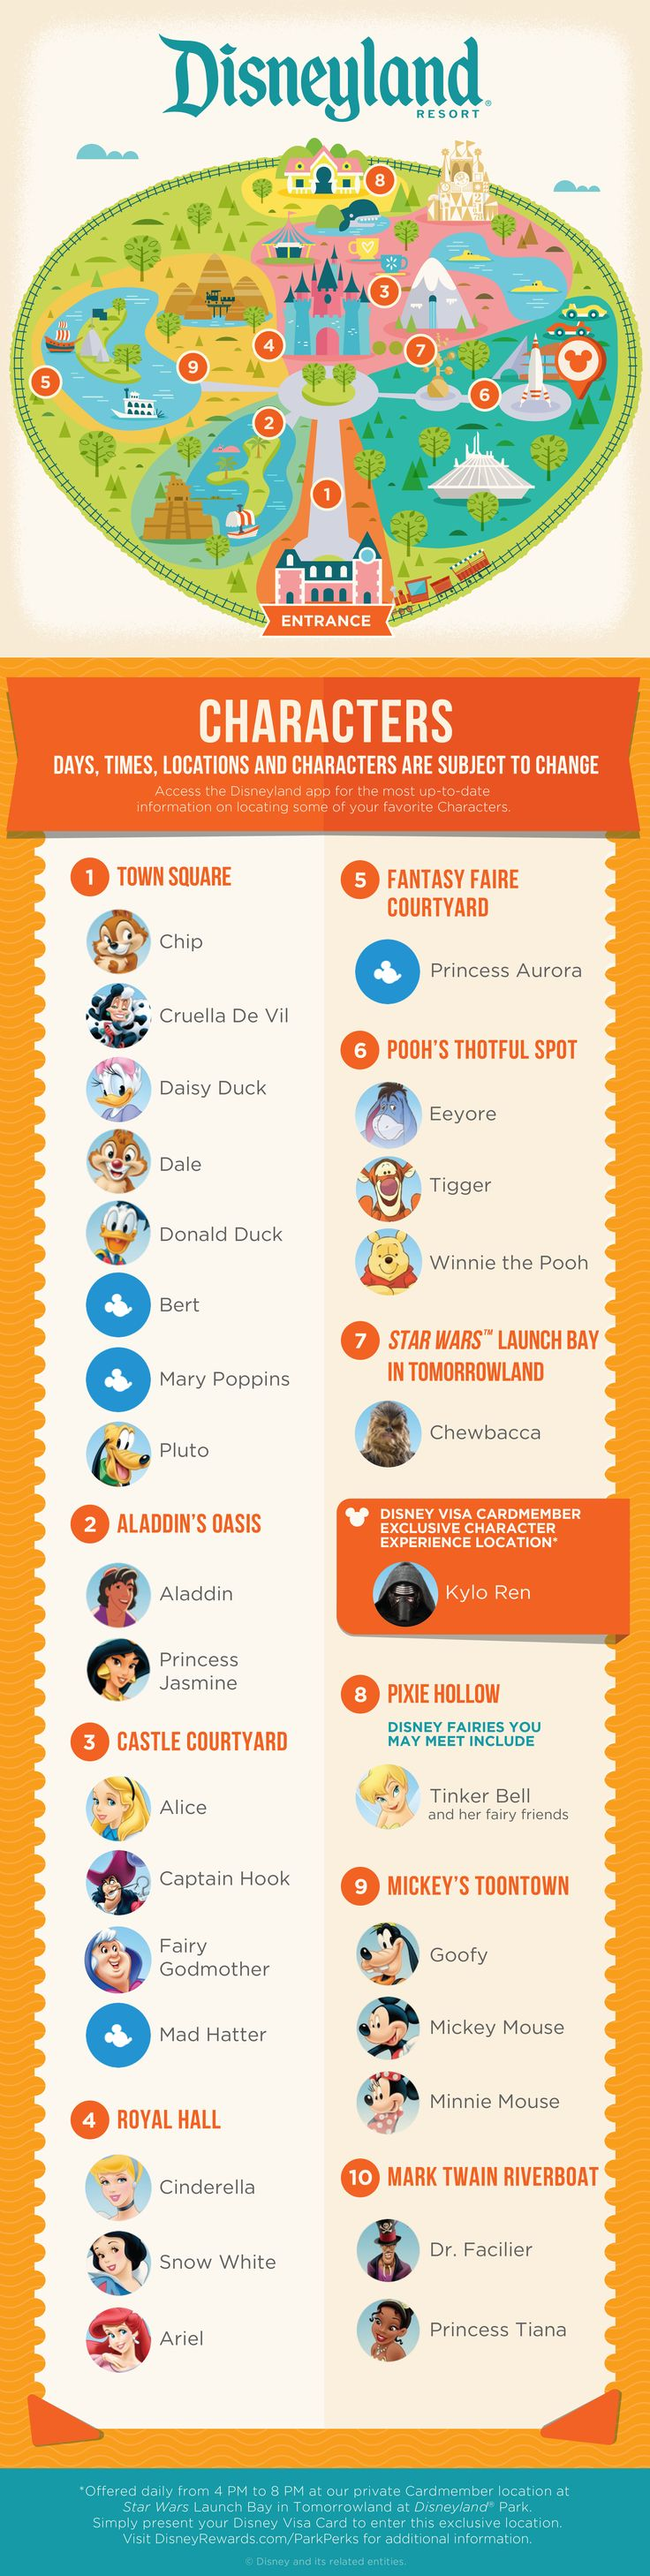 *m. With this guide, you can find the Character Experiences waiting for you at Disneyland® Park!